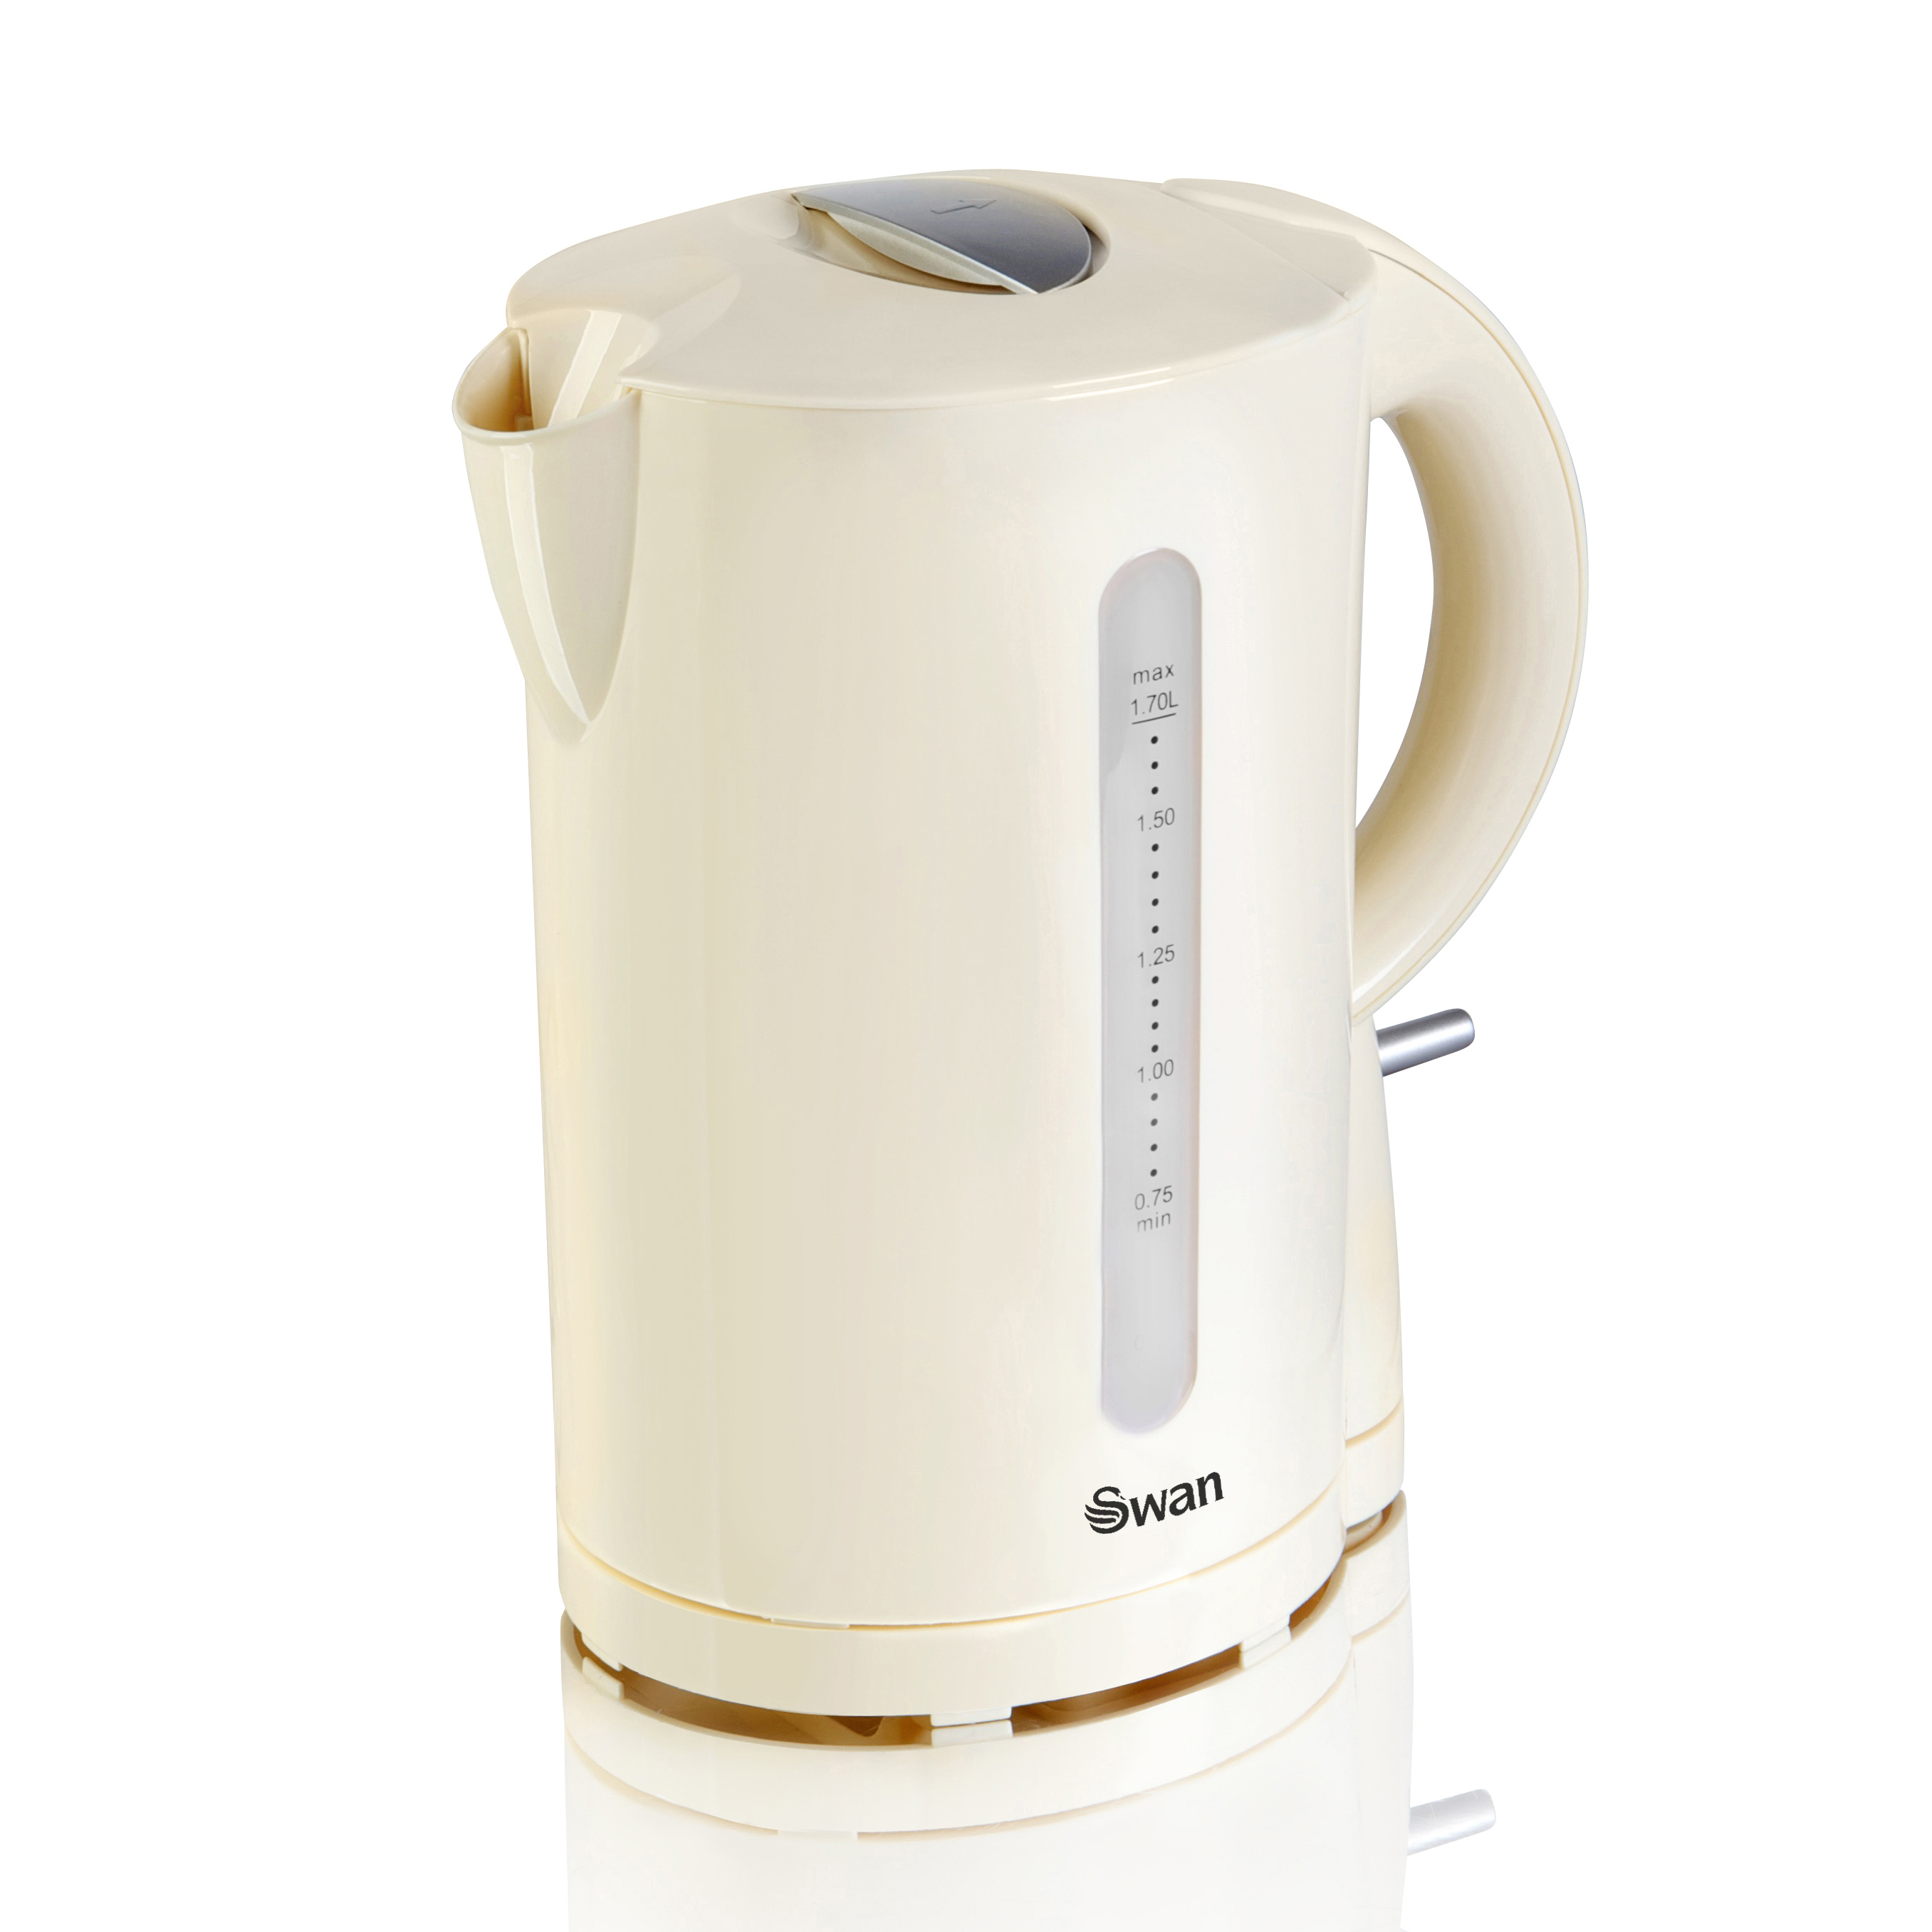 Swan 1.7 Litre Jug Kettle Cream - Cream No Colour